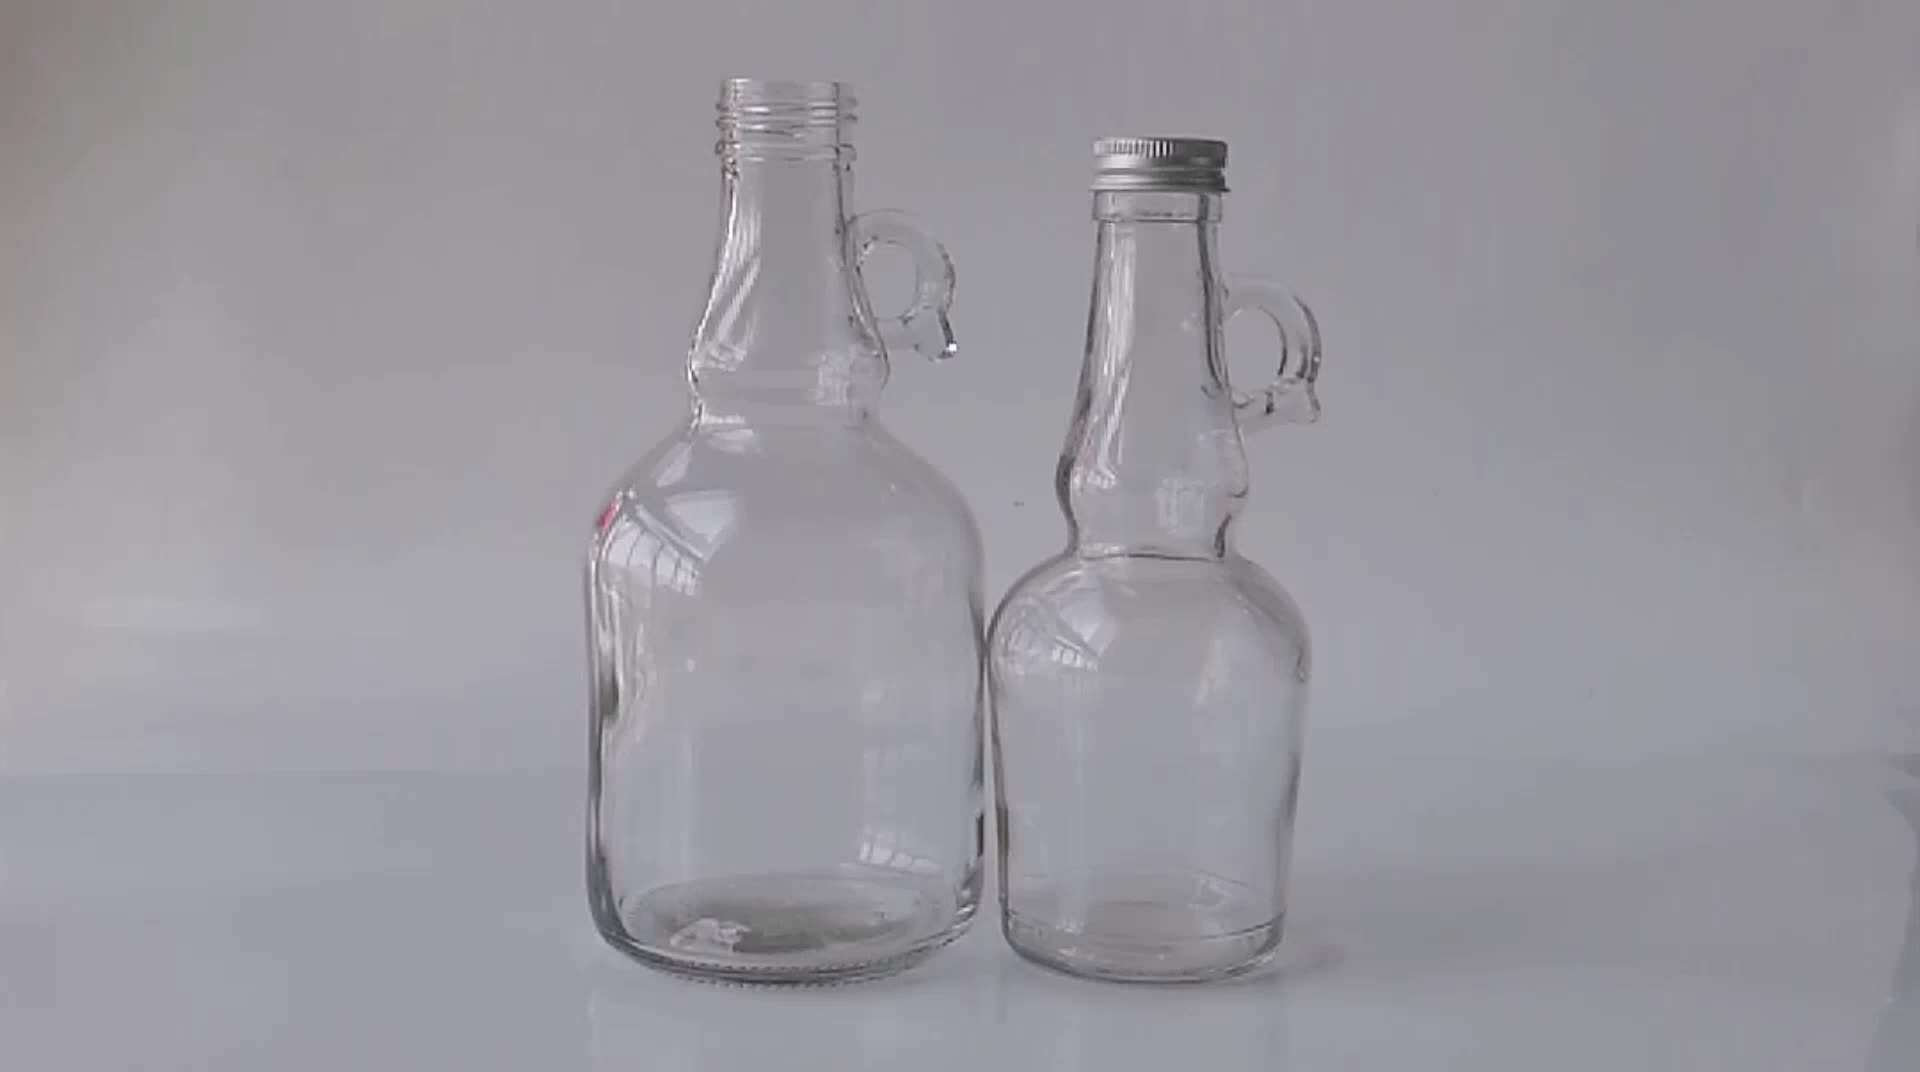 1l Home Brewing Beer Bottle With Plastic Cap Buy Brewing